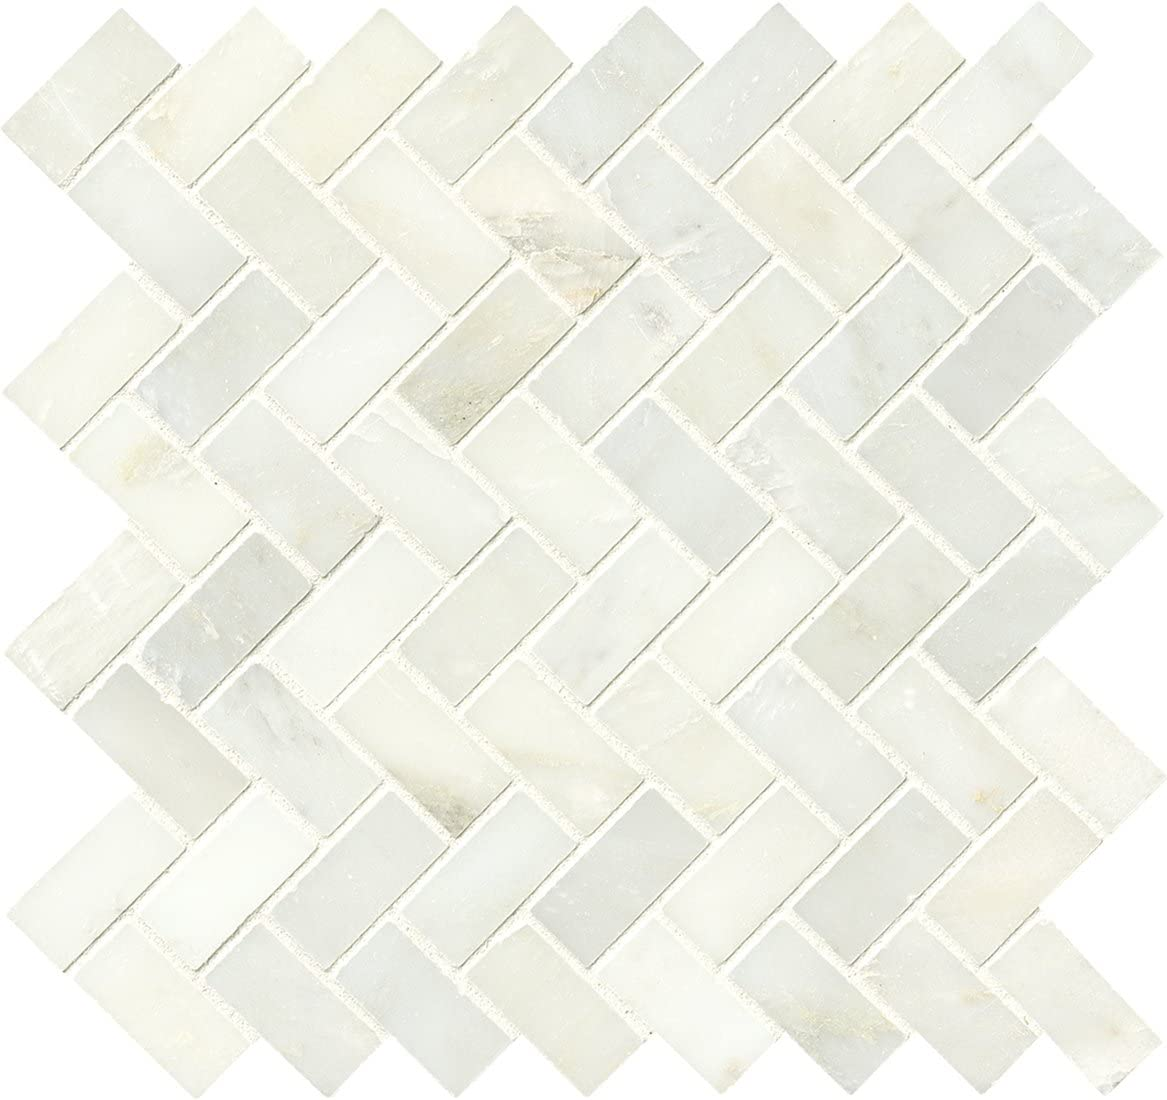 10 Seattle Mall Sq. Ft. Case White Herringbone Sales results No. 1 in. 12 X Pattern